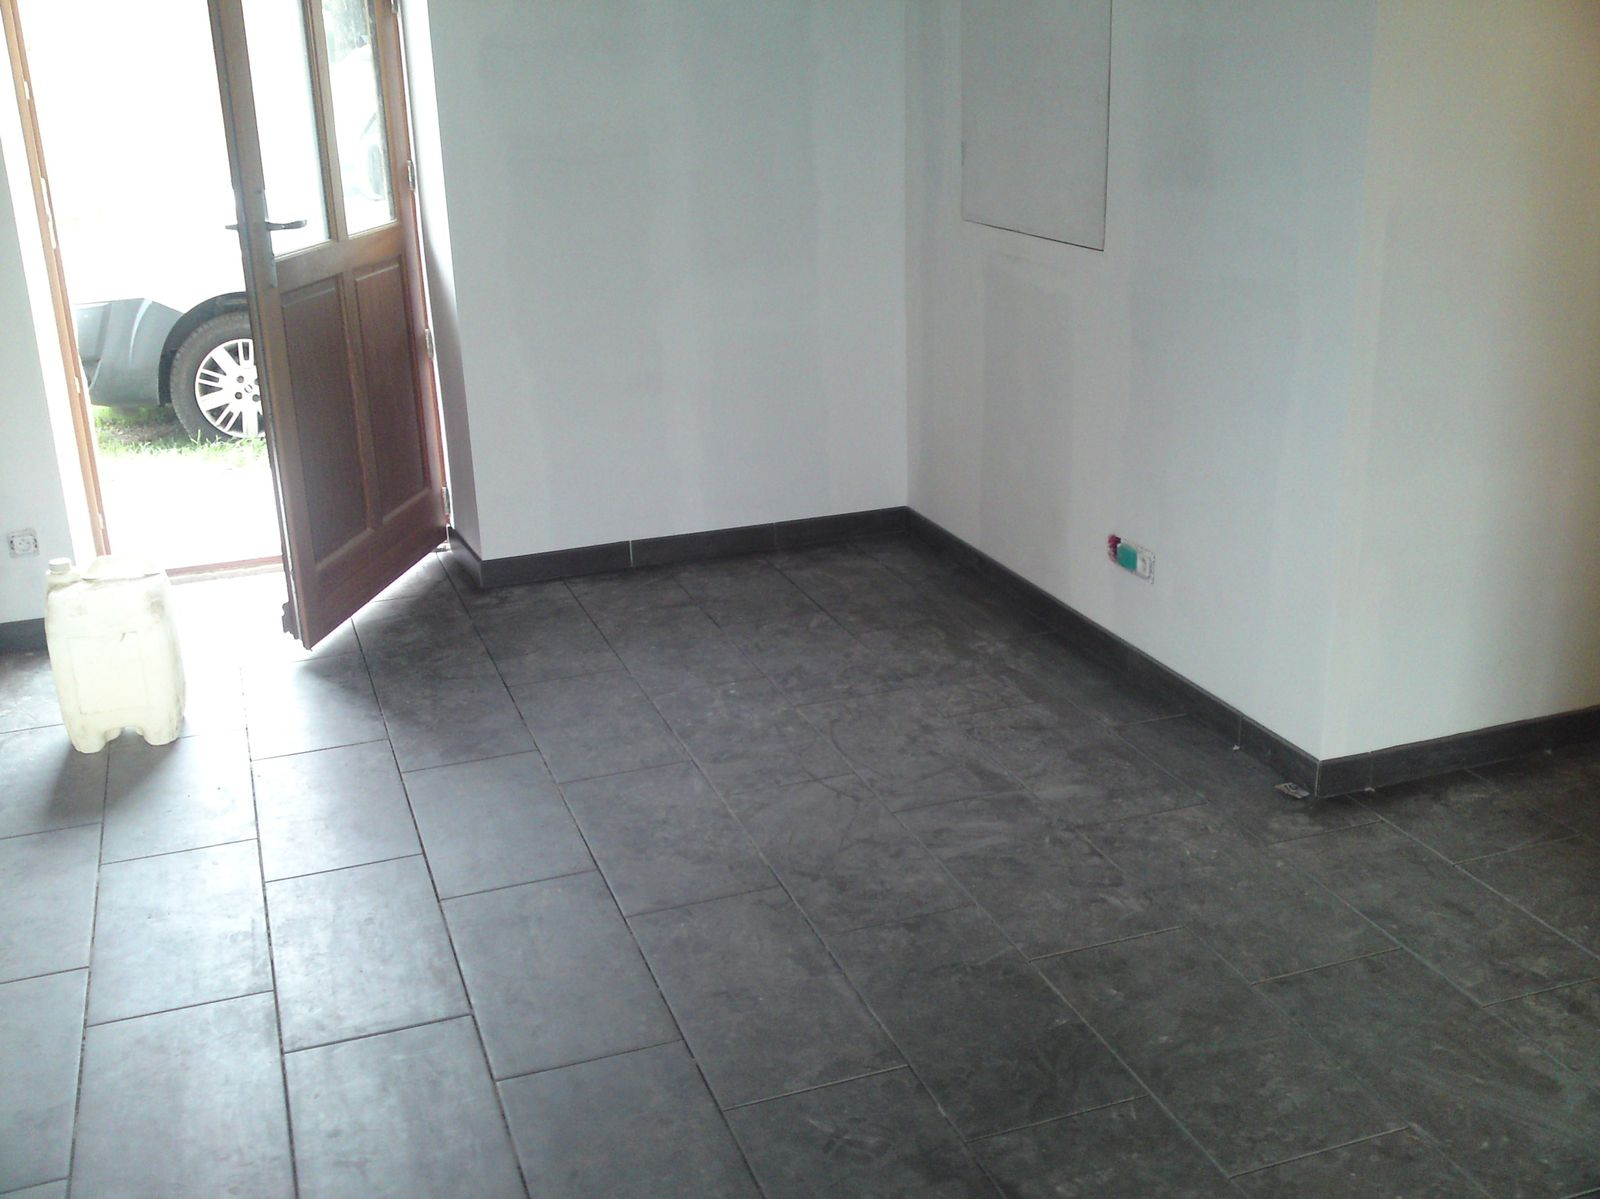 Pose des plinthes renovation d 39 une fermette en bourgogne for Joint entre carrelage et plinthe